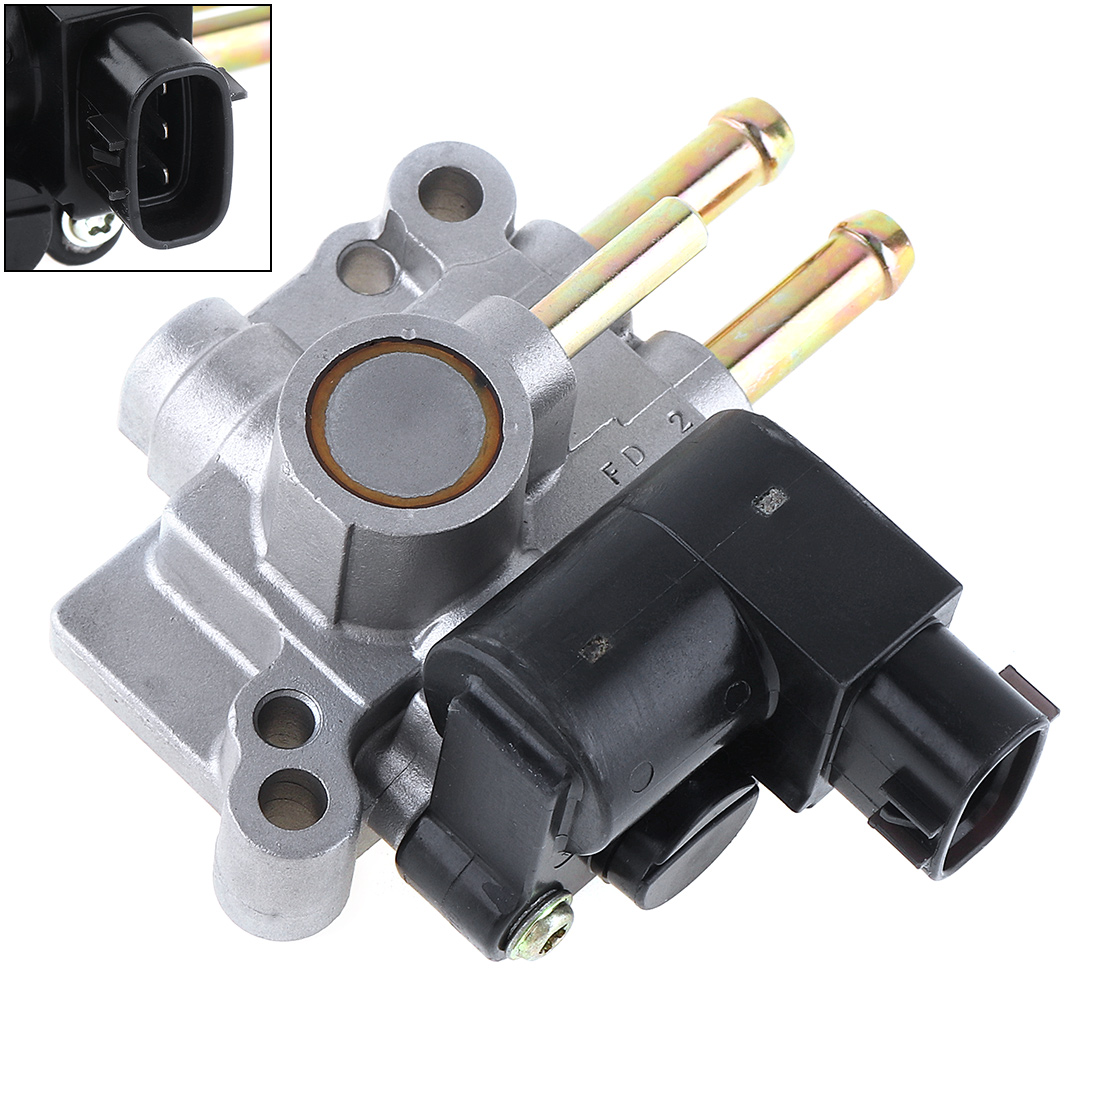 36460-PAA-L21 36450-PAA-L21 Idle Air Control Valve Practical Automotive Tools For Honda Accord RA6